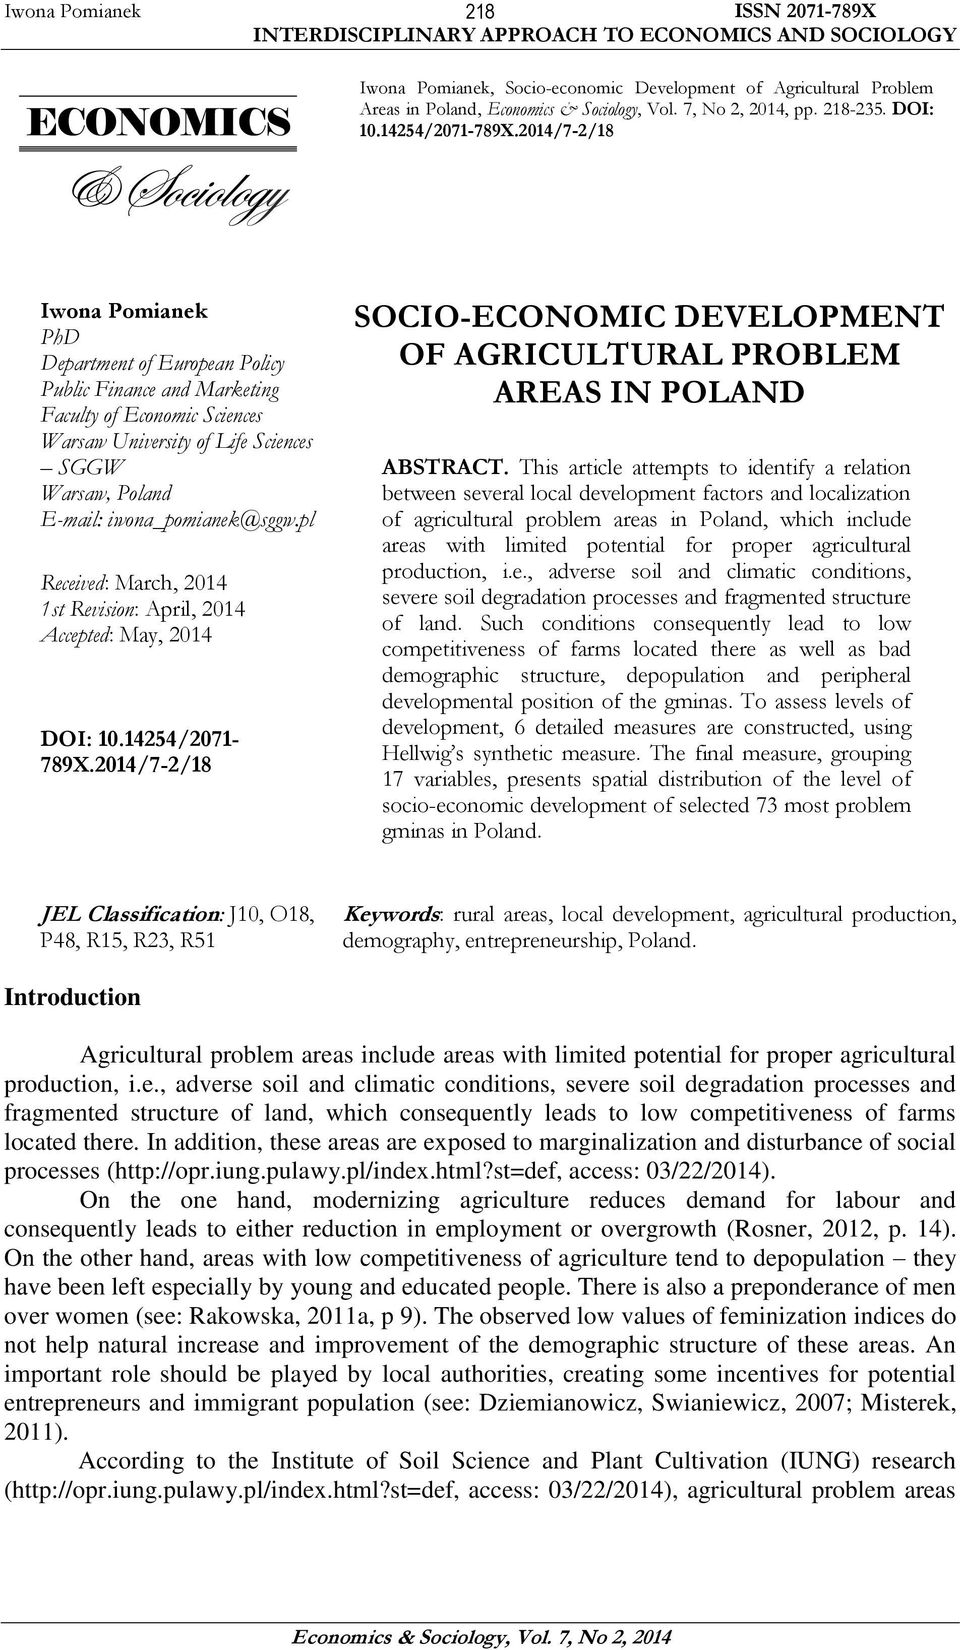 pl Receved: March, 2014 1st Revson: Aprl, 2014 Accepted: May, 2014 DOI: 10.14254/2071-789X.2014/7-2/18 SOCIO-ECONOMIC DEVELOPMENT OF AGRICULTURAL PROBLEM AREAS IN POLAND ABSTRACT.